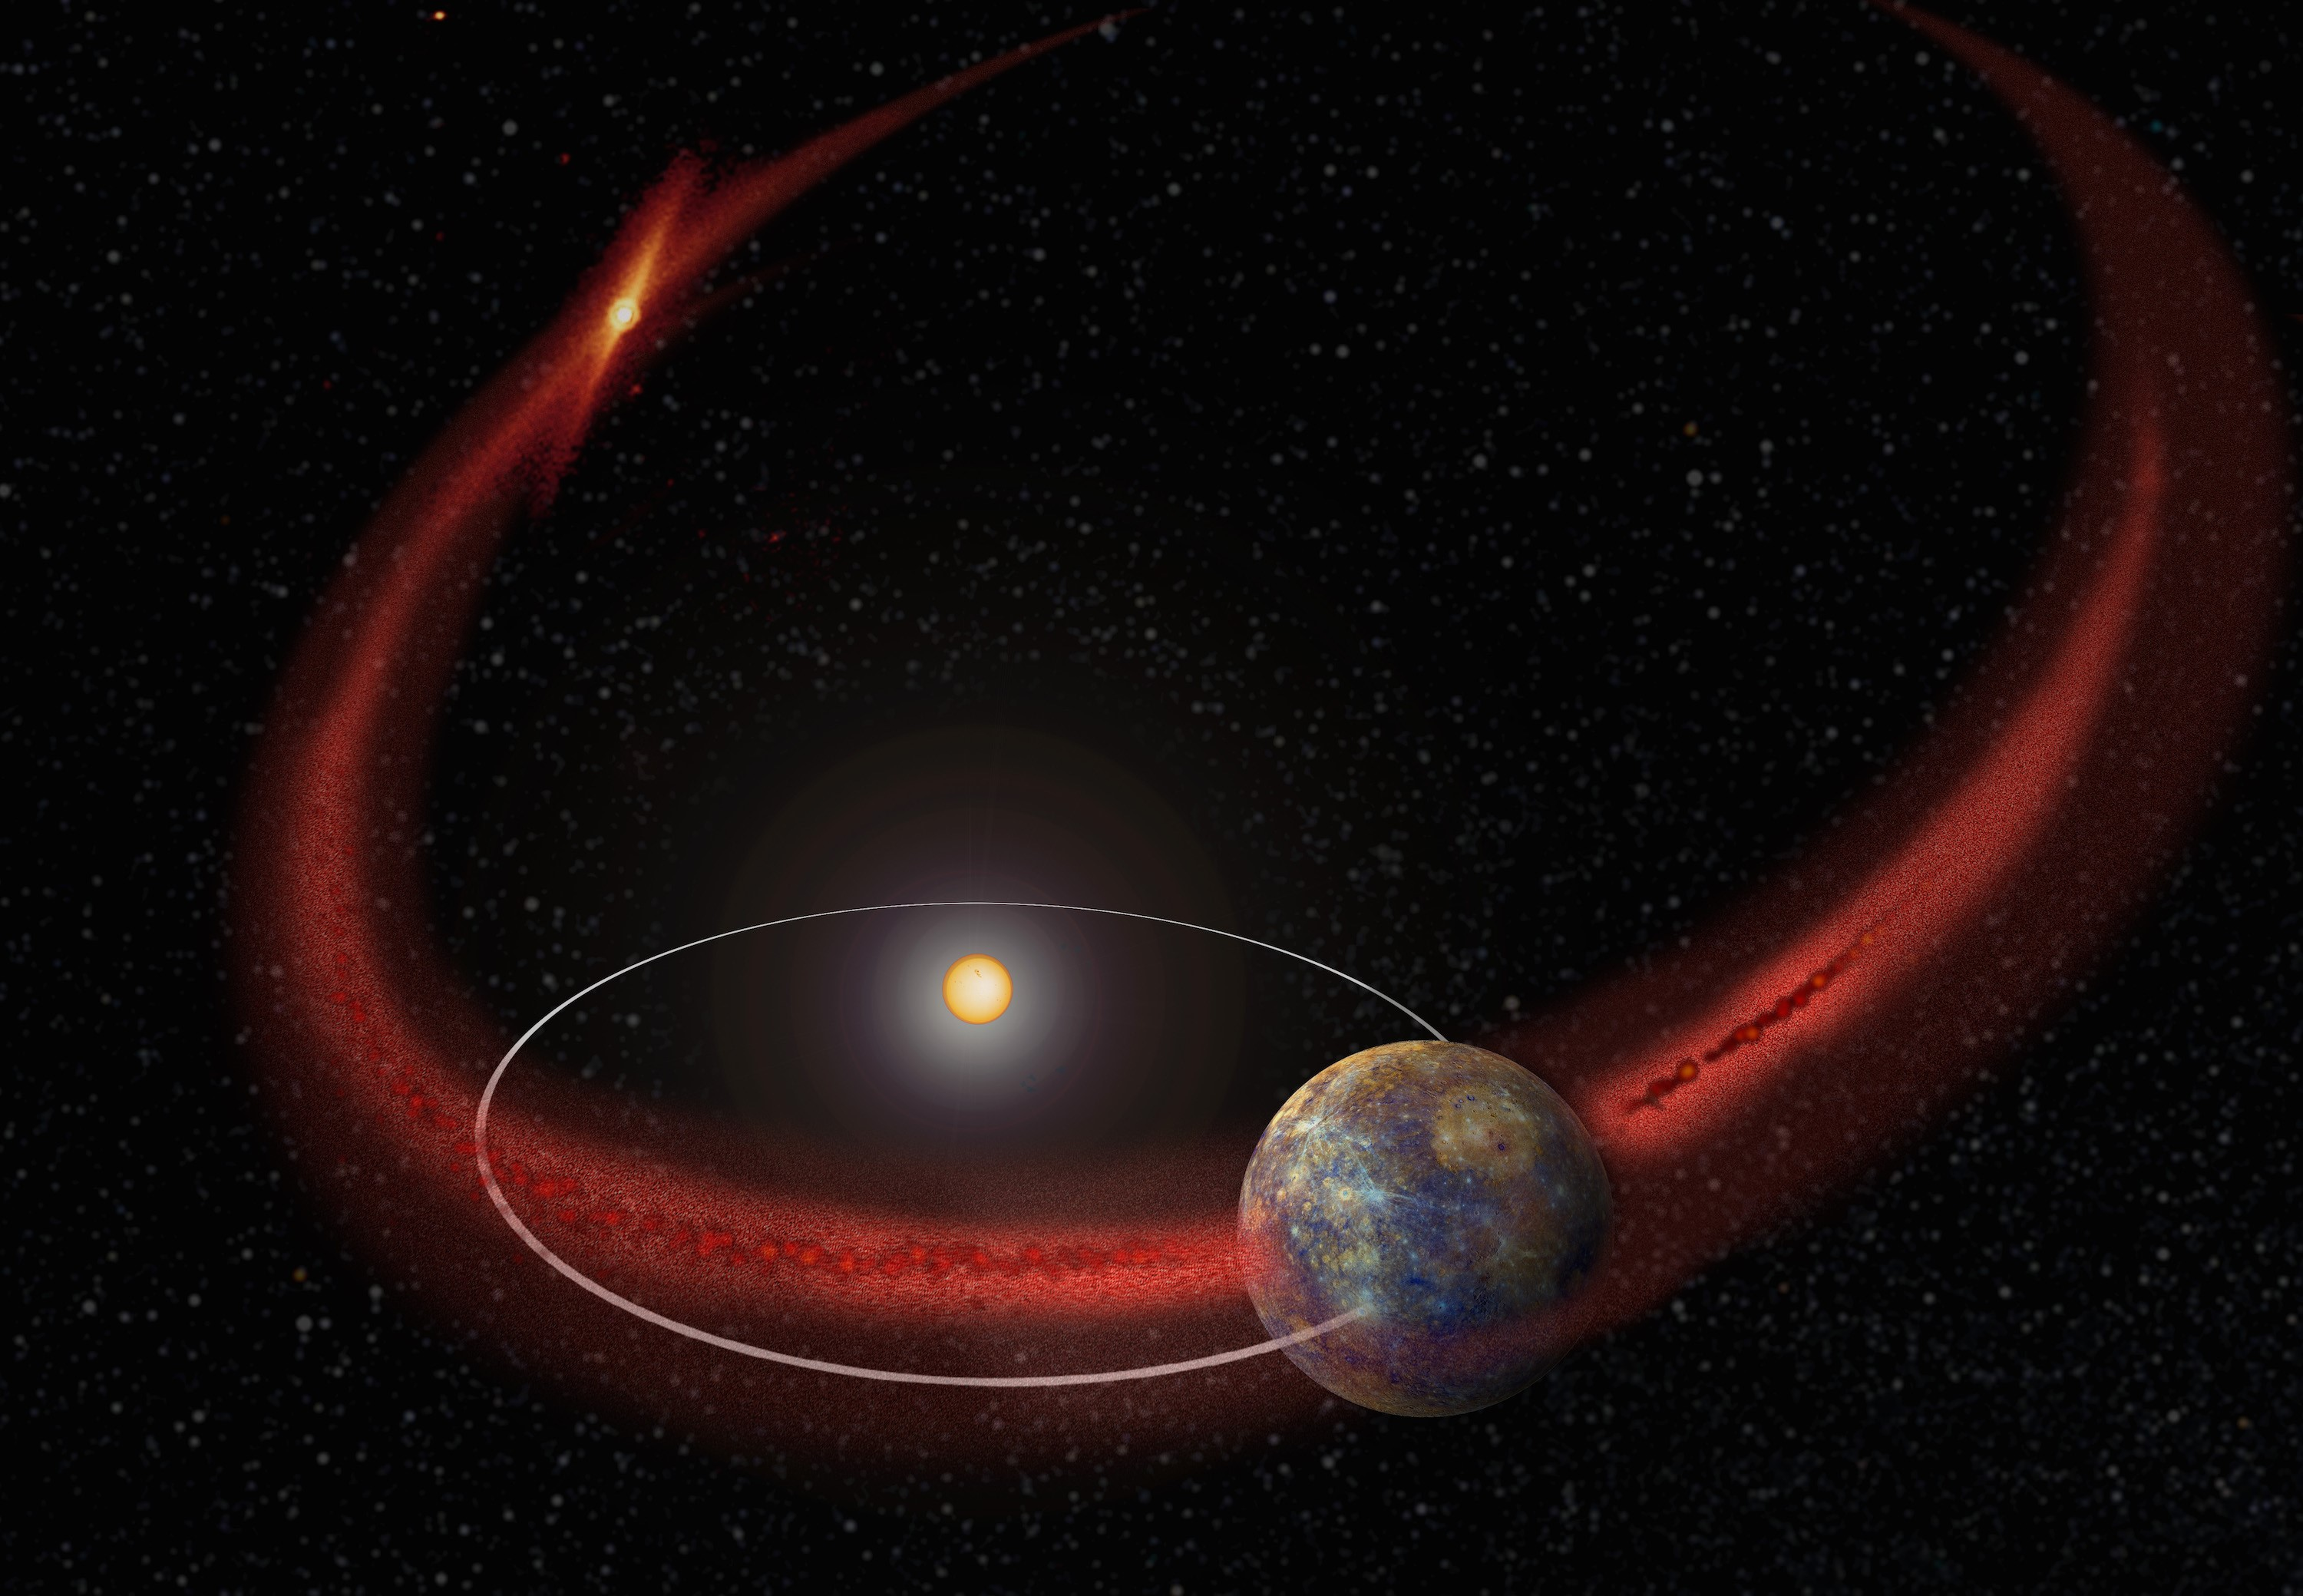 Mercury appears to undergo a recurring meteoroid shower when its orbit crosses the debris trail left by comet Encke. (Artist's concept.)